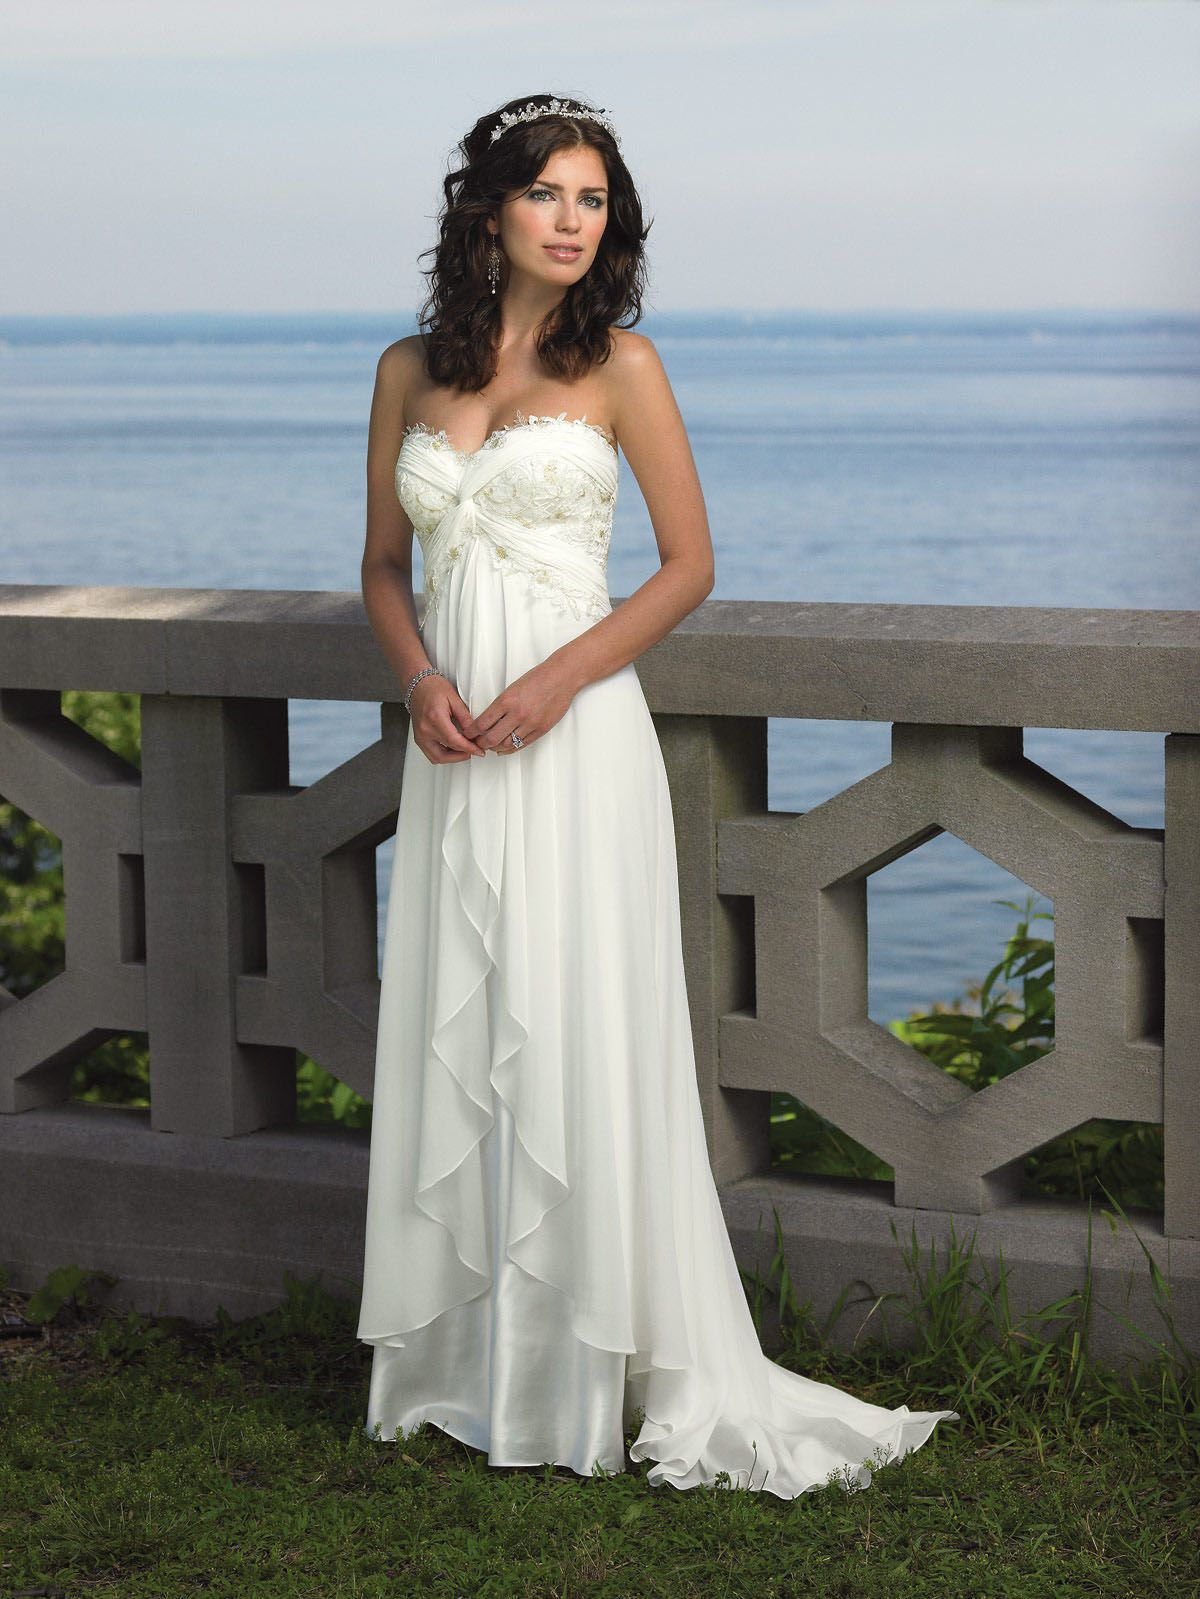 058e5f069a Ivory chiffon strapless beach wedding dress with lace trimmed sweetheart  neckline, beaded lace bodice with twist detail and empire waistline,  Ruffled skirt ...